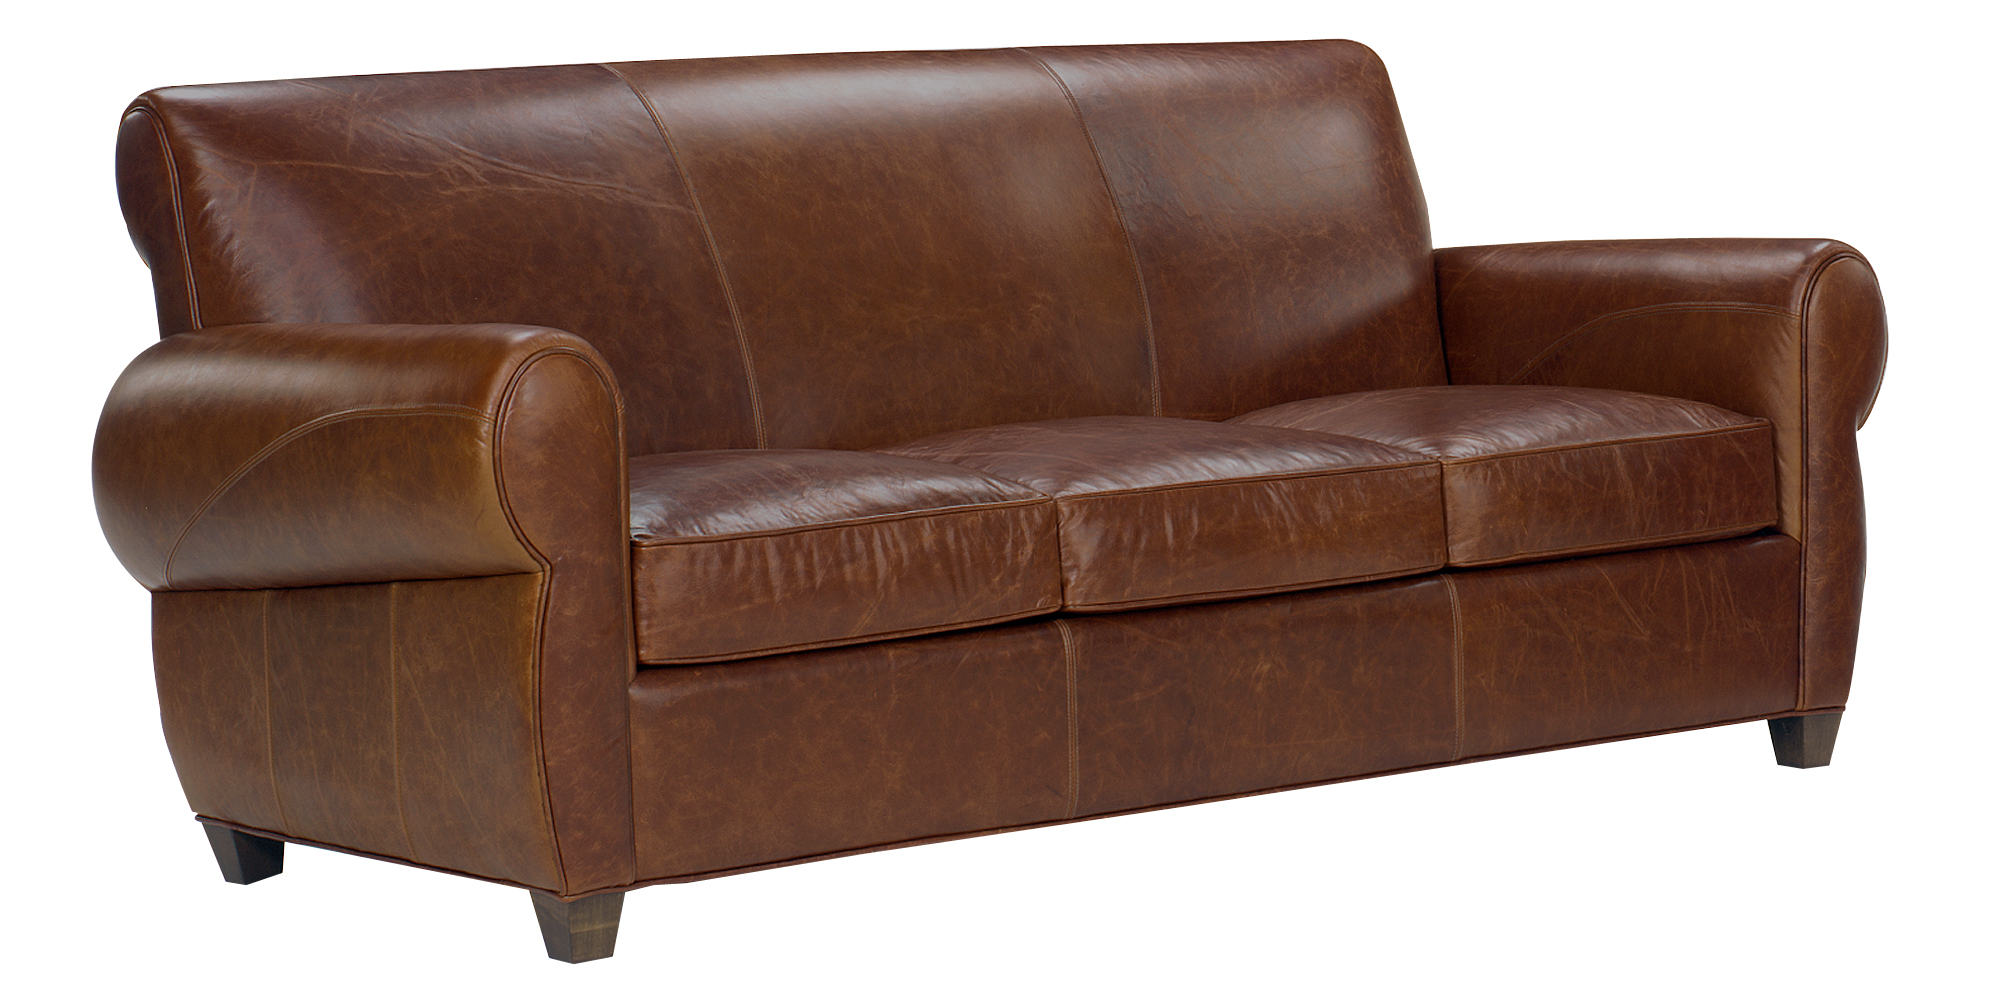 Rustic Leather Sofa Winda 7 Furniture